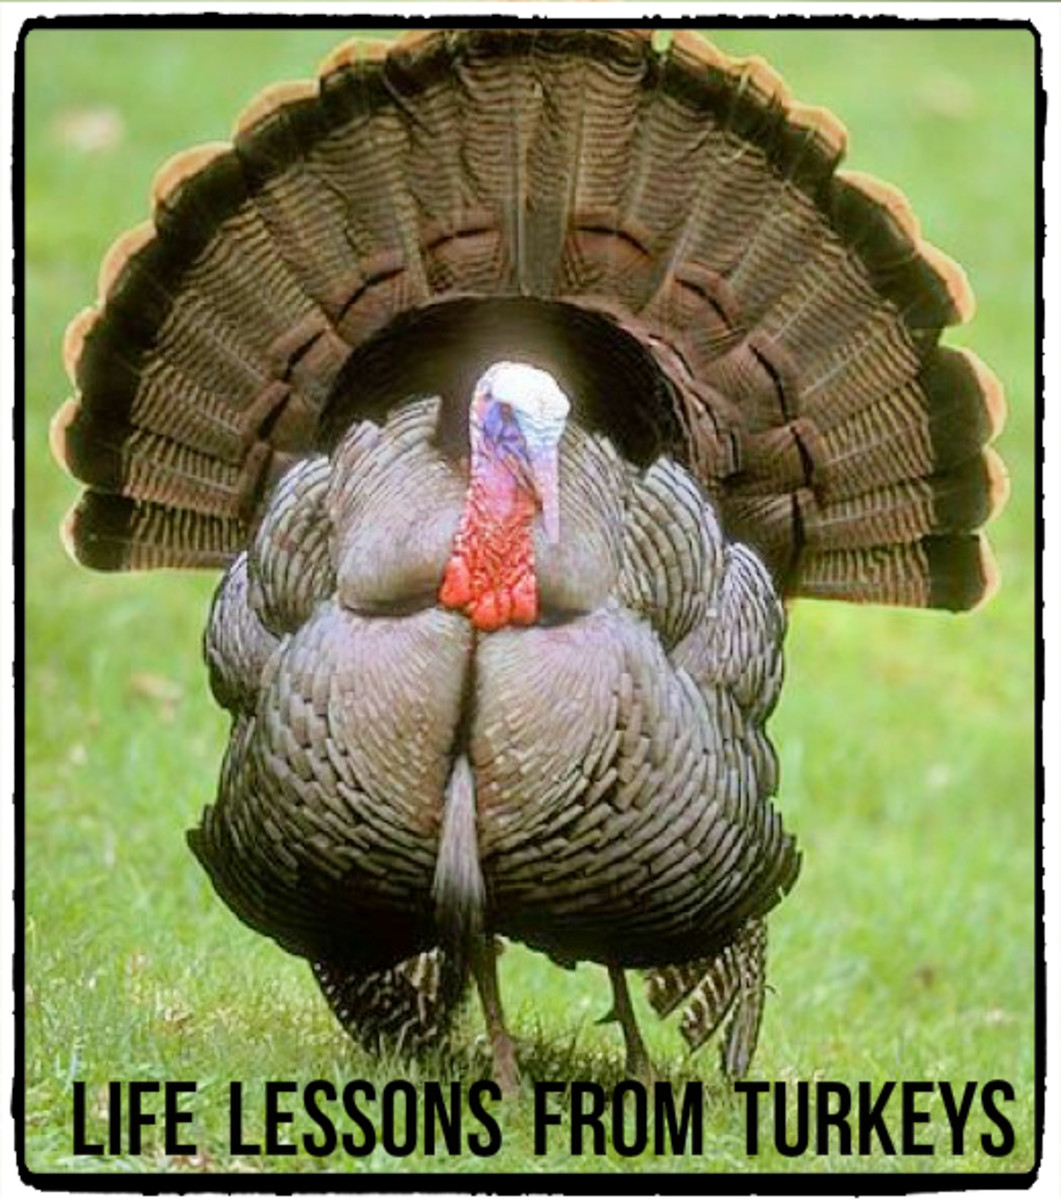 3 Lessons Turkeys Can Teach Us About Life